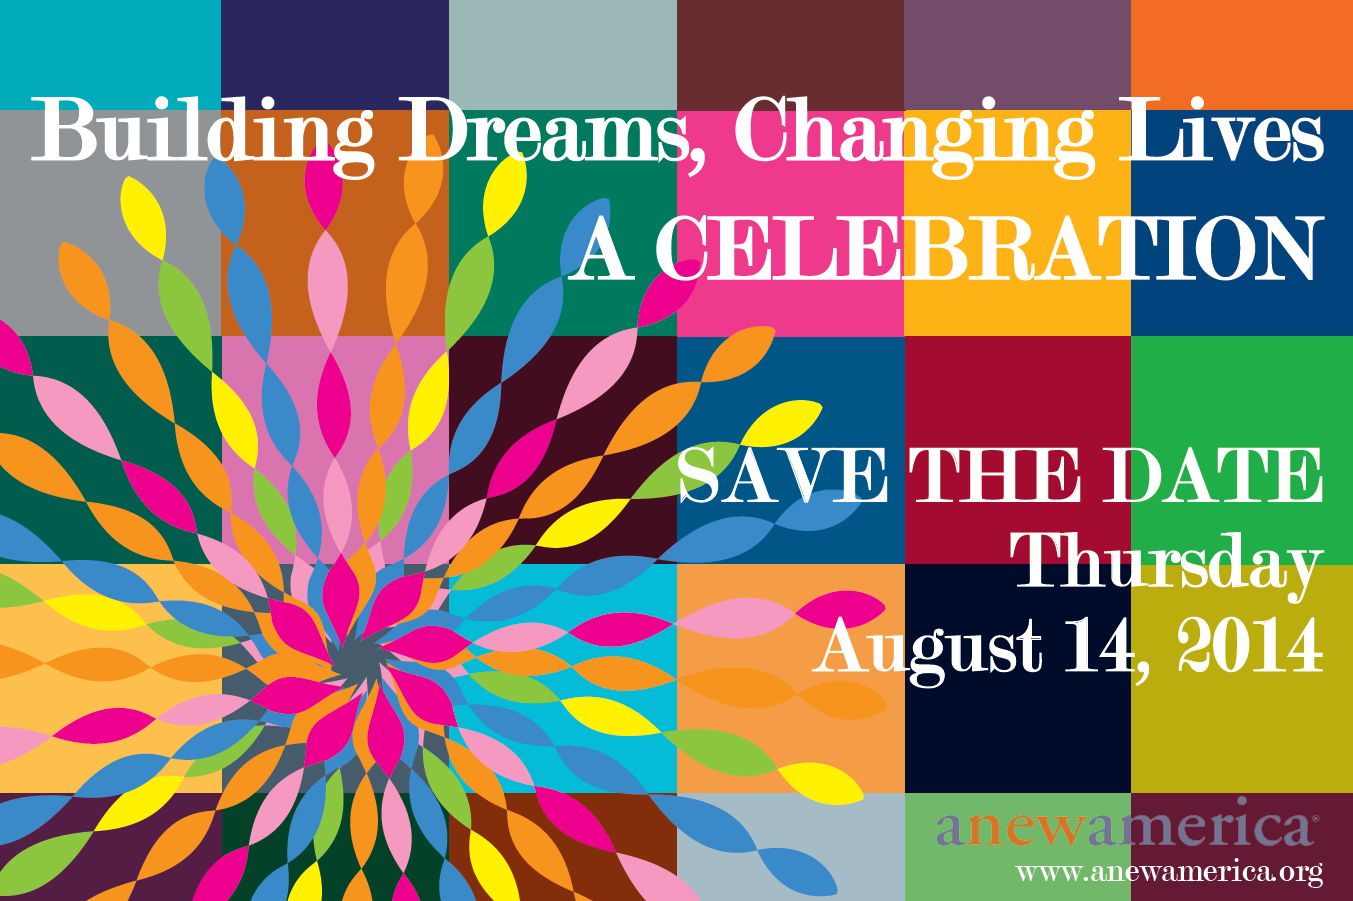 AnewAmerica Microbusiness Celebration August 14, 2014 Save the Date